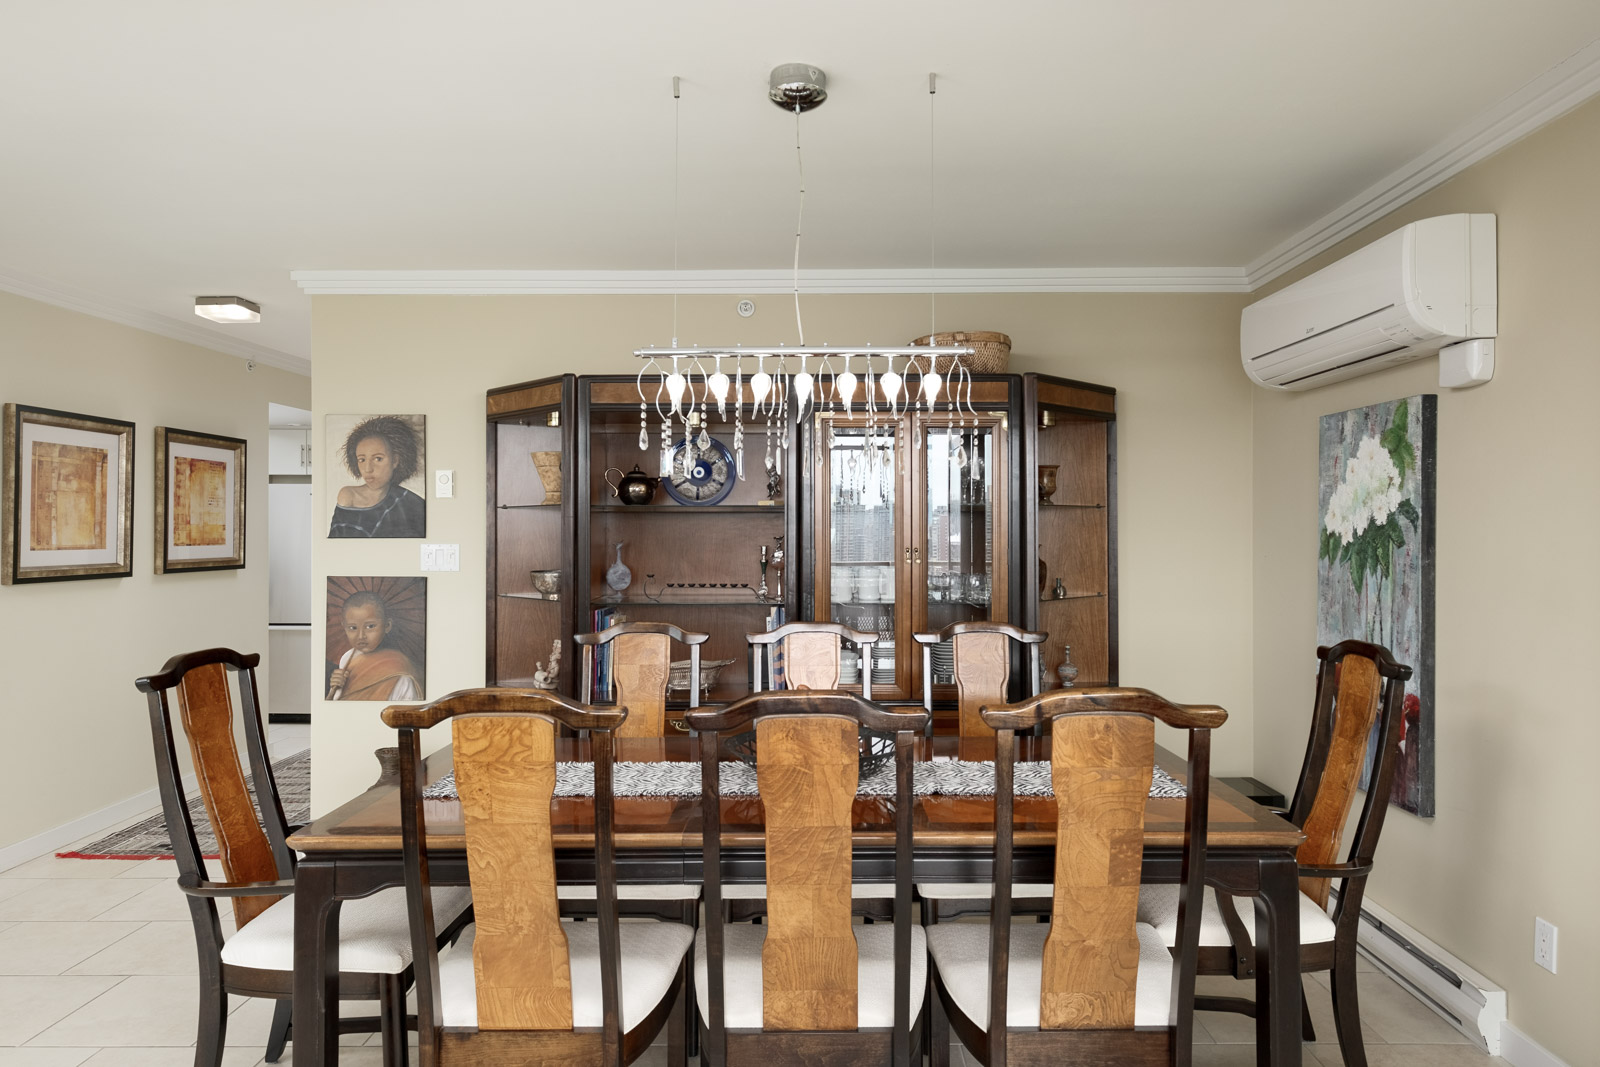 Dining area of furnished Vancouver rental condo with decorative shelving and hanging artwork.